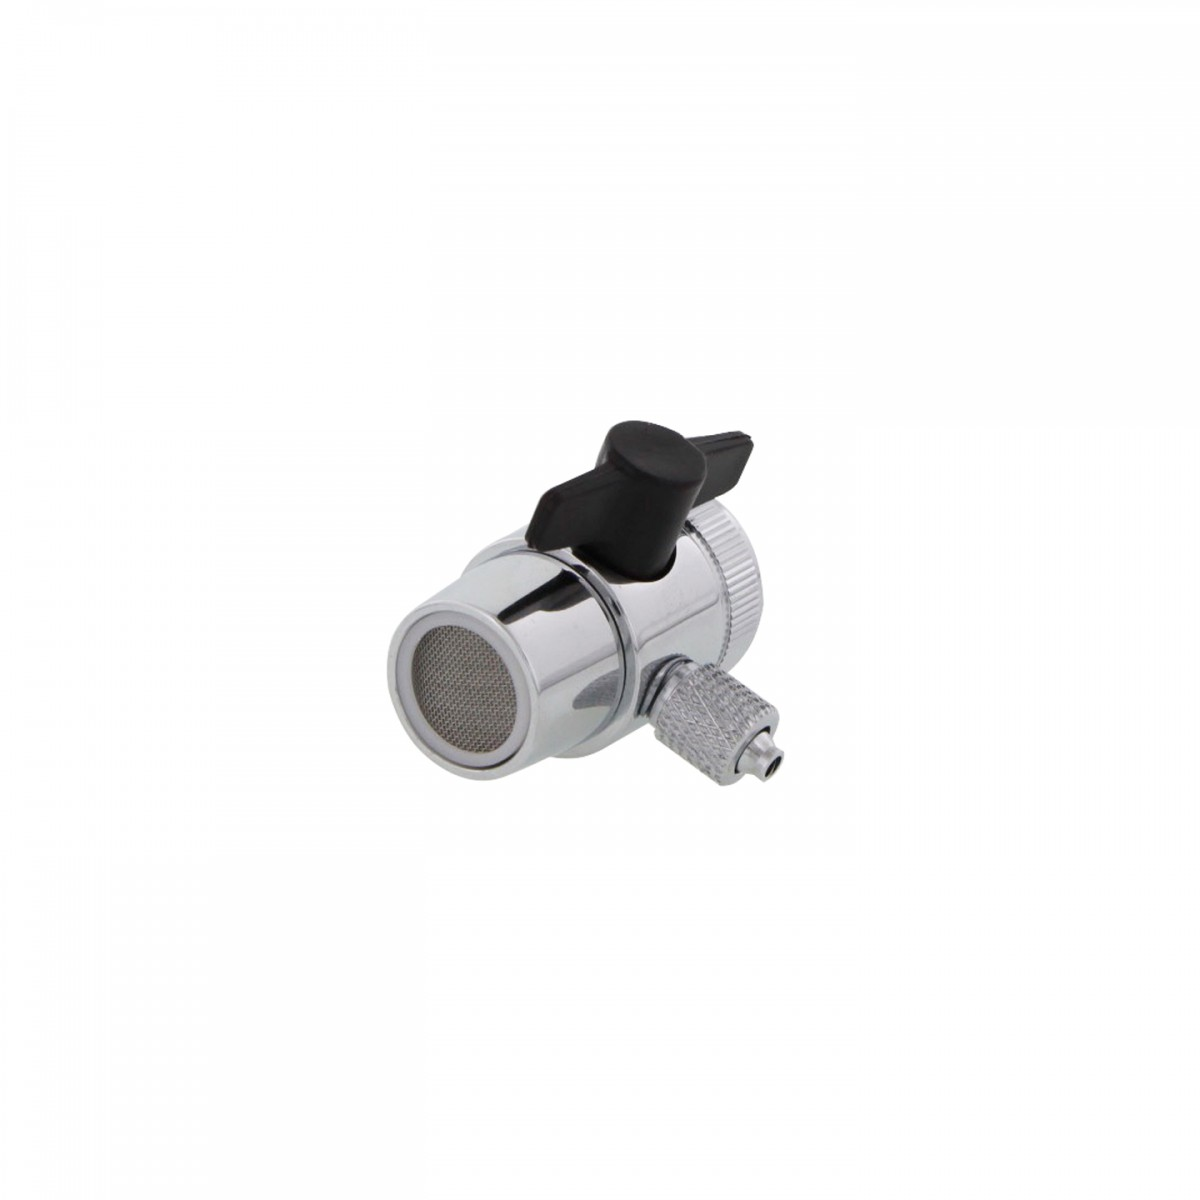 CNTP DV 14C Tier1 Diverter Valve (bottom) #5E5851